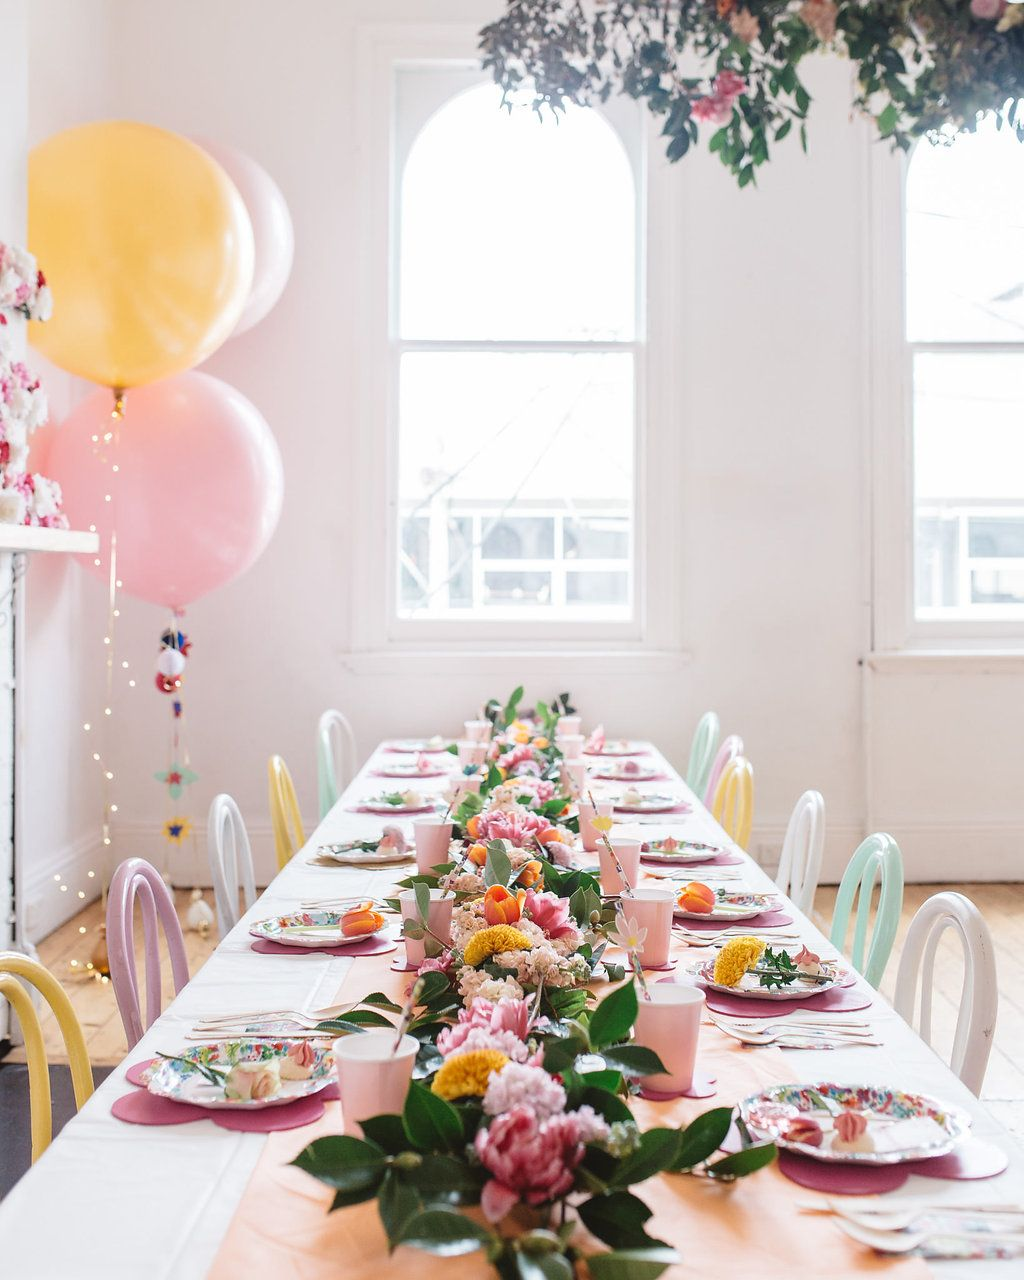 Winter Garden Party Ideas Part - 24: Melbourne Stylist Aimee Tarulli Hosted A Inside Winter Garden Party For Her  Daughter Rosieu0027s First Birthday. Styled By Ashlea Young From Plan A Events,  ...